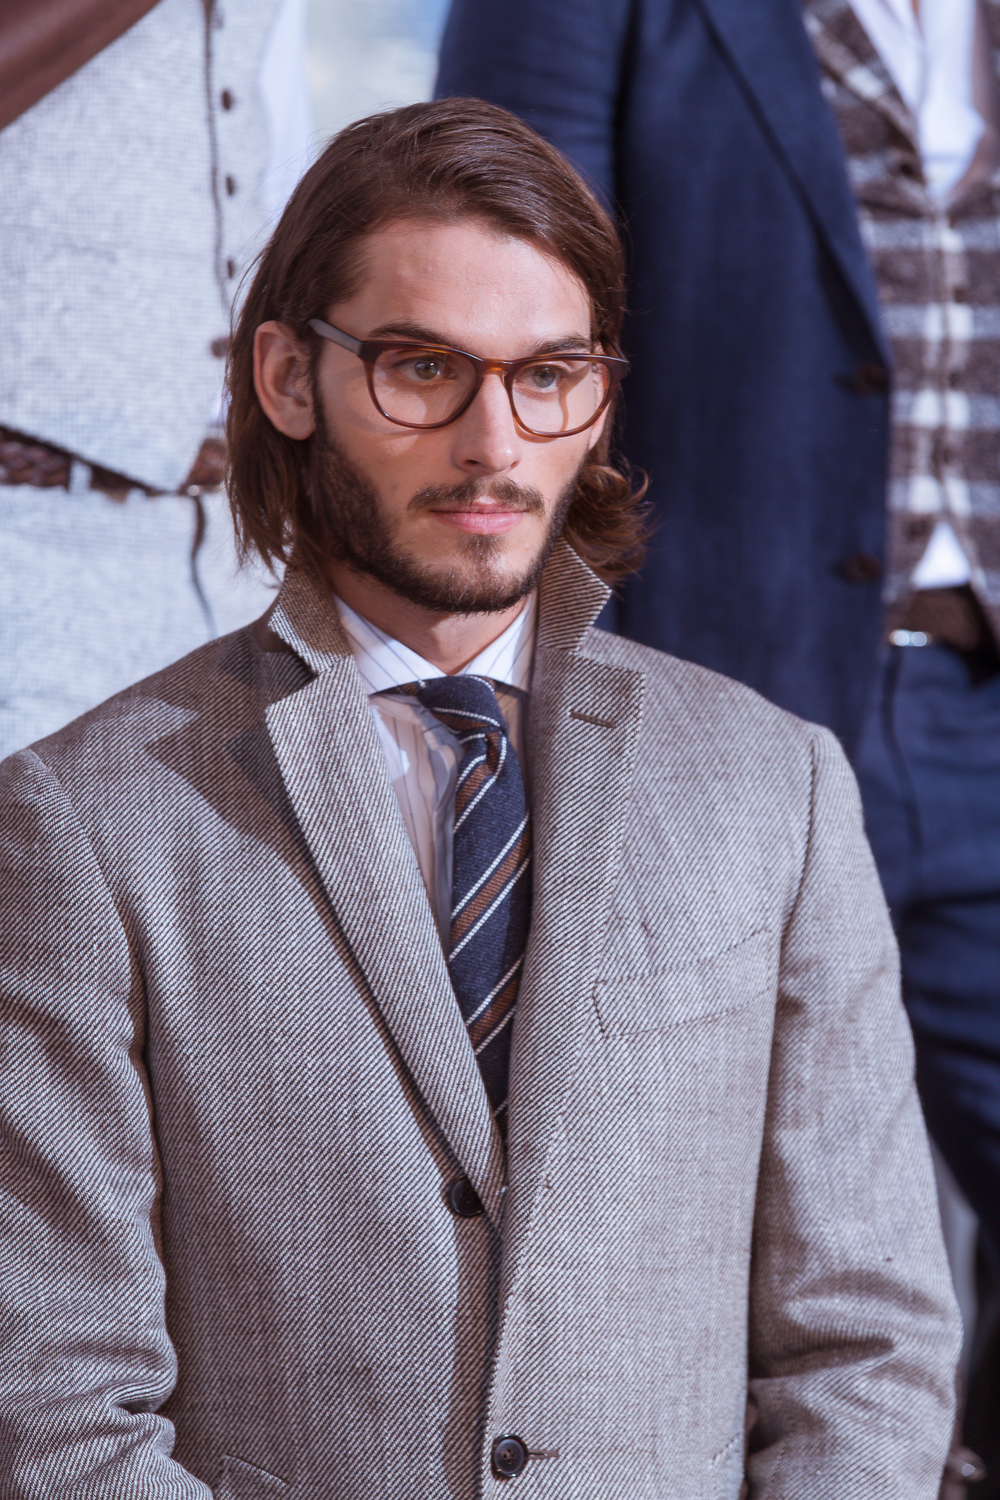 090-20160711 WillCadena.com Go247 SuitSupply.jpg